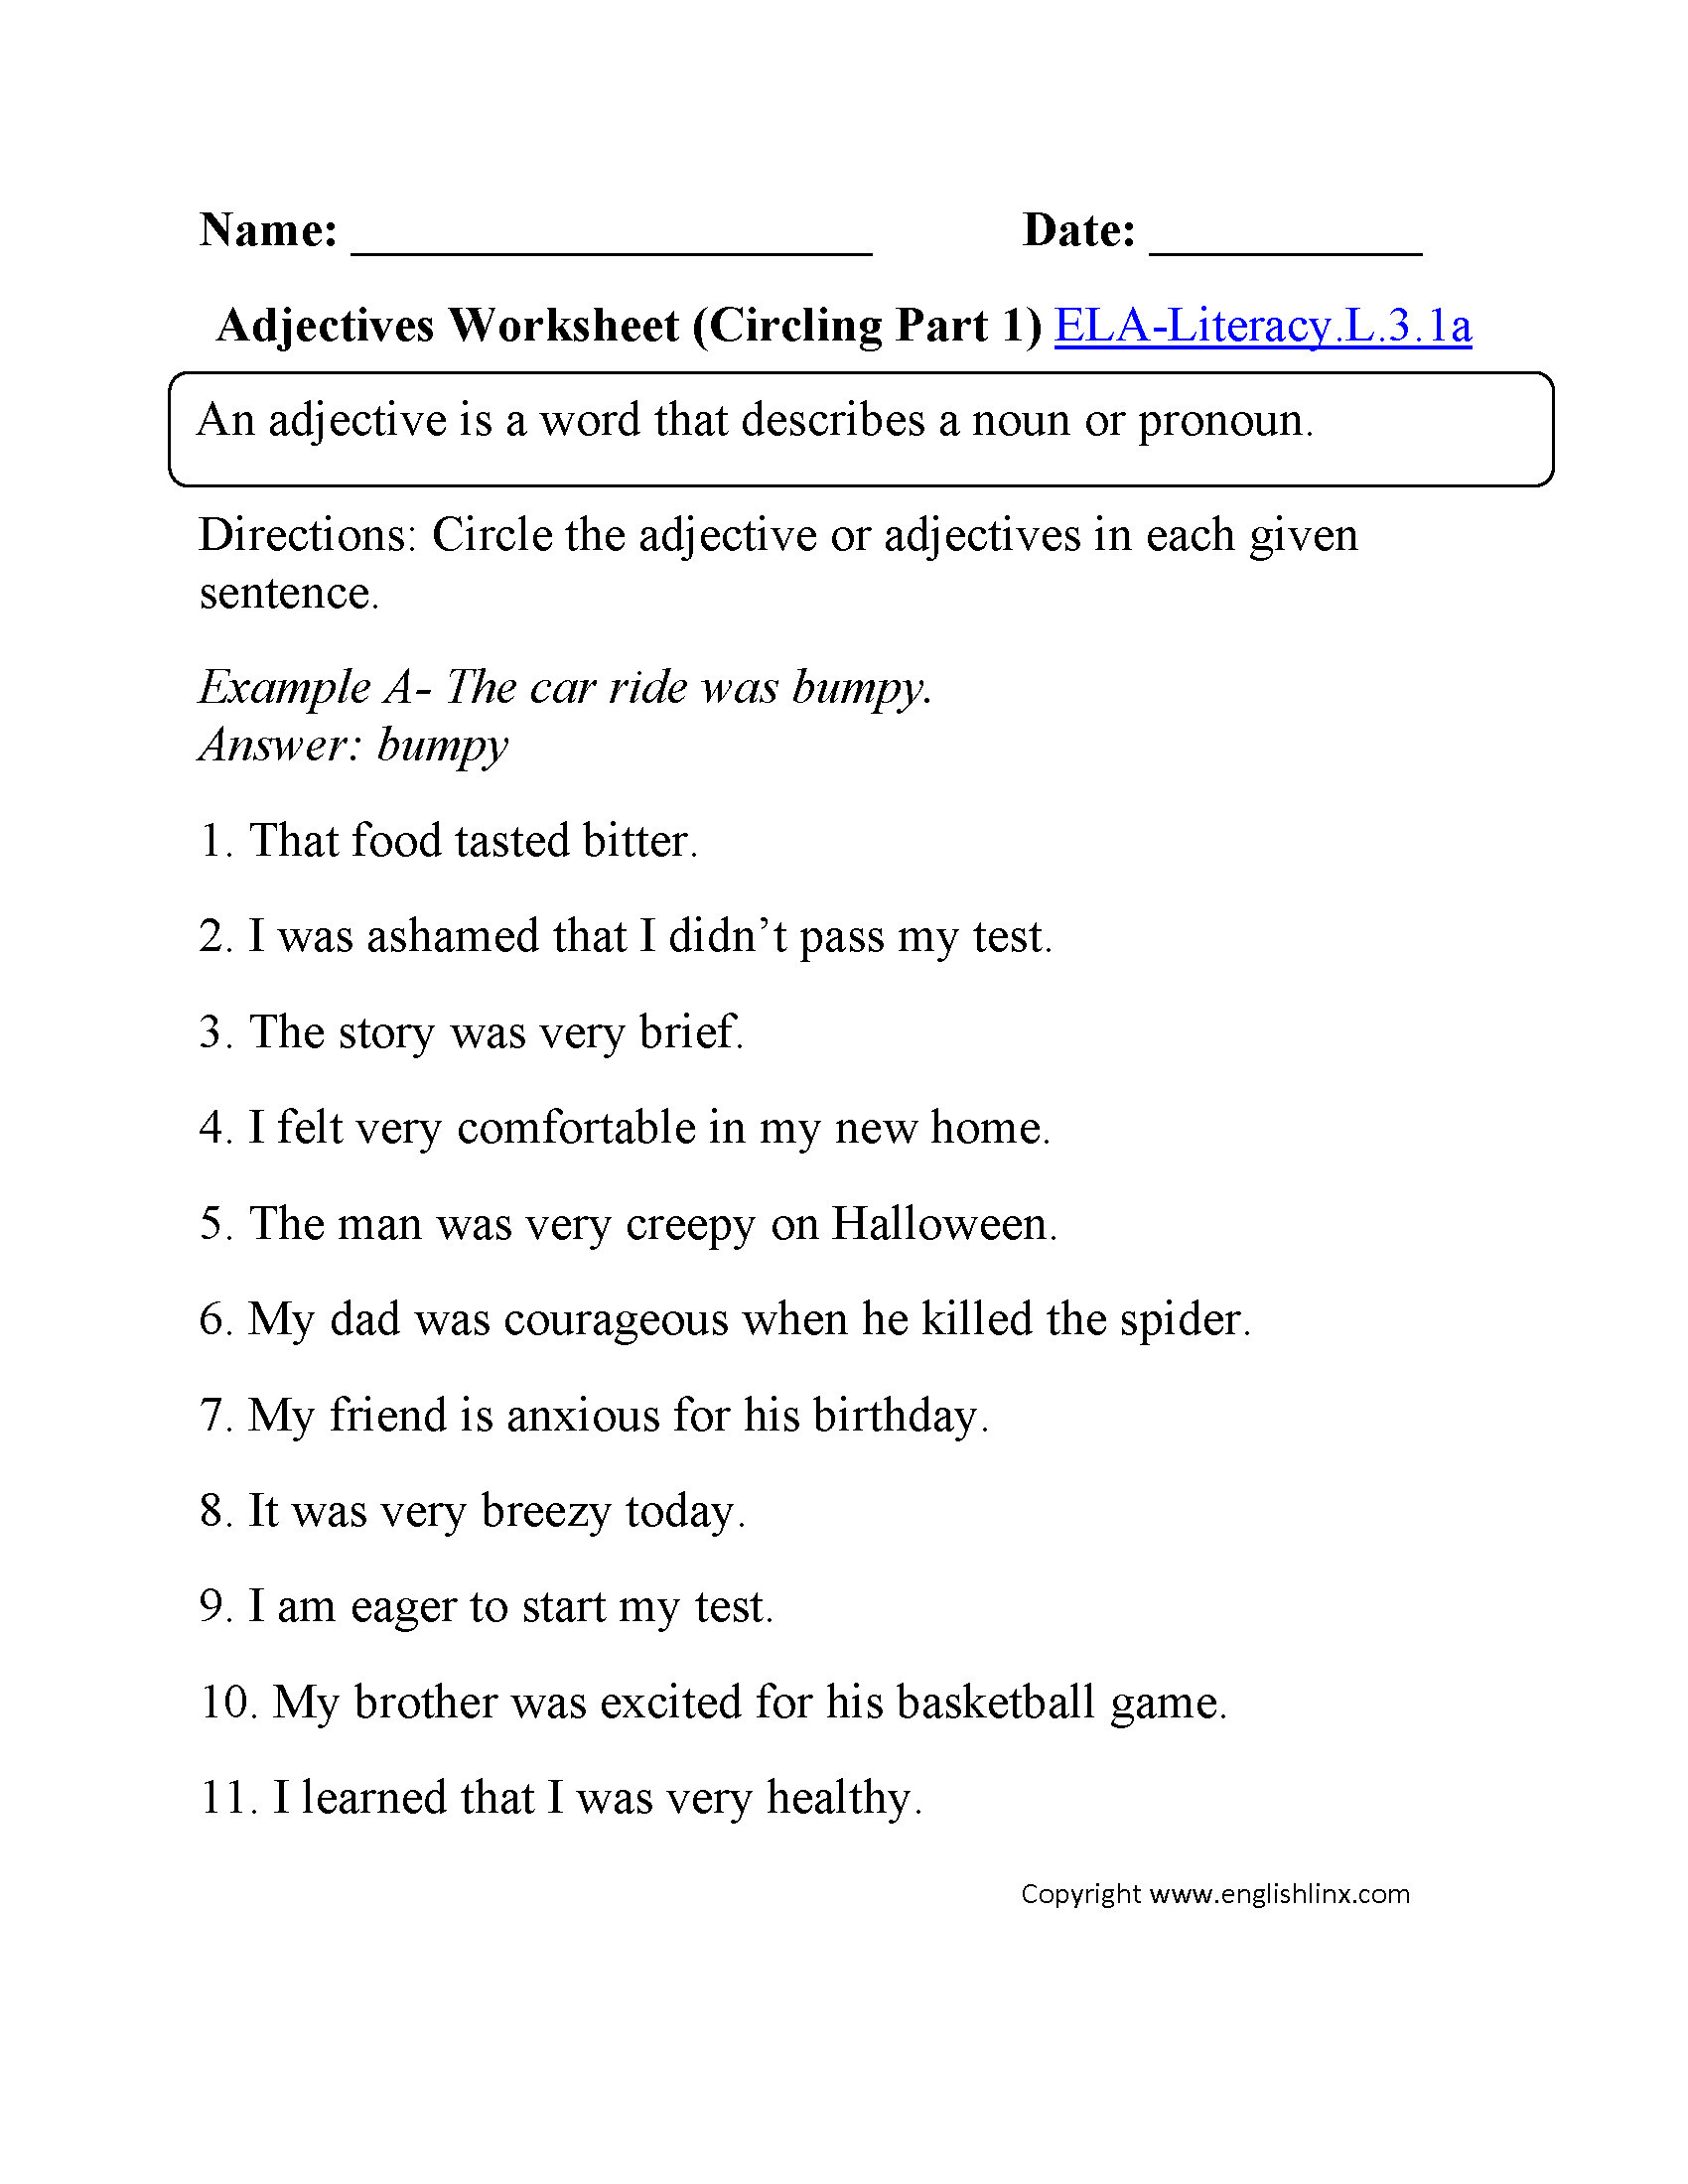 Proofreading Worksheets 5th Grade 5 Free Grammar Worksheets Fifth Grade 5 Sentences Add